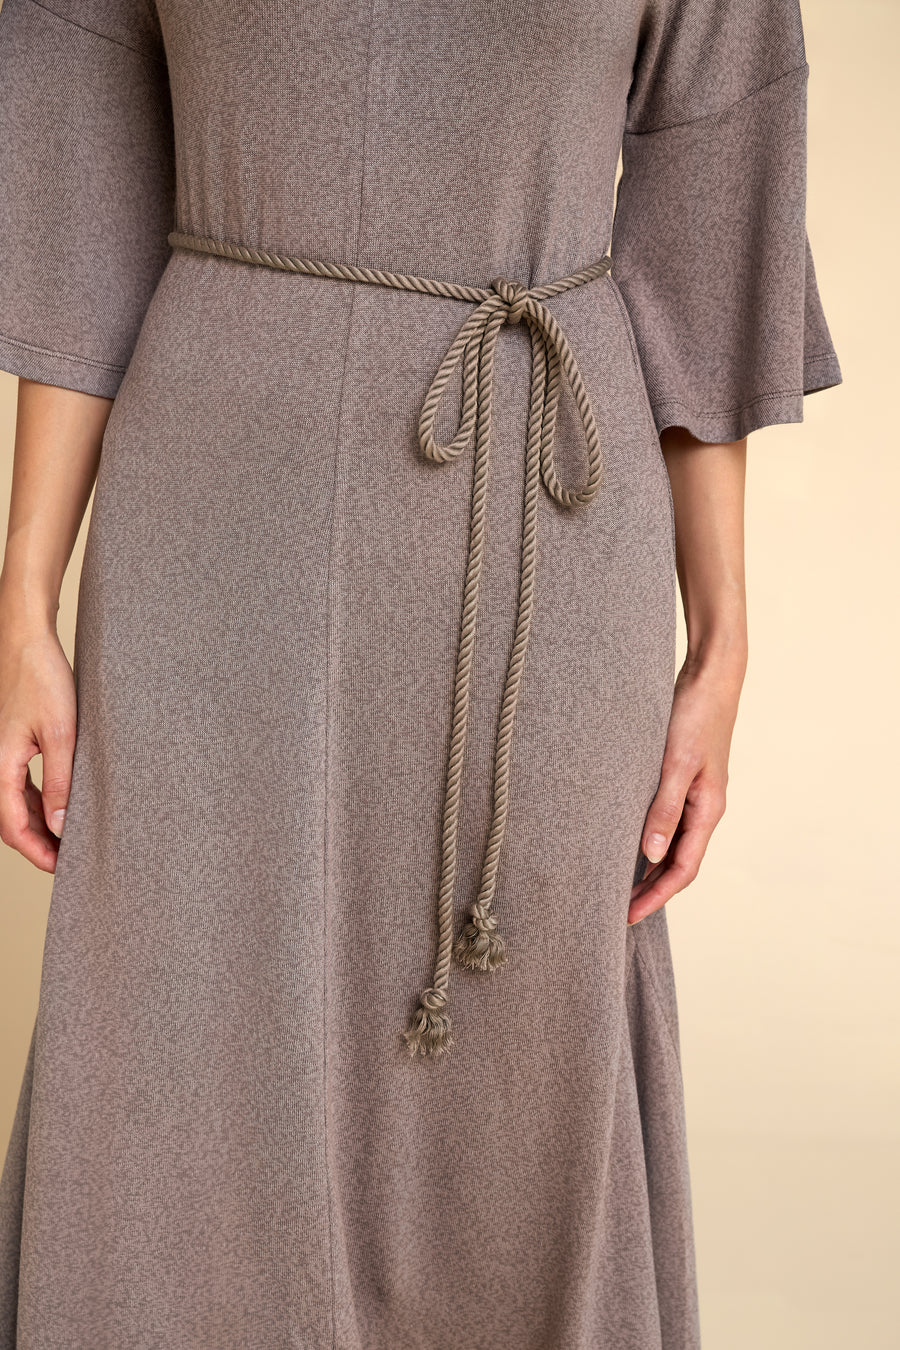 Close up of Akala Clothing's sustainable Sweater Dress with cotton cord in Mink color, size Extra Small